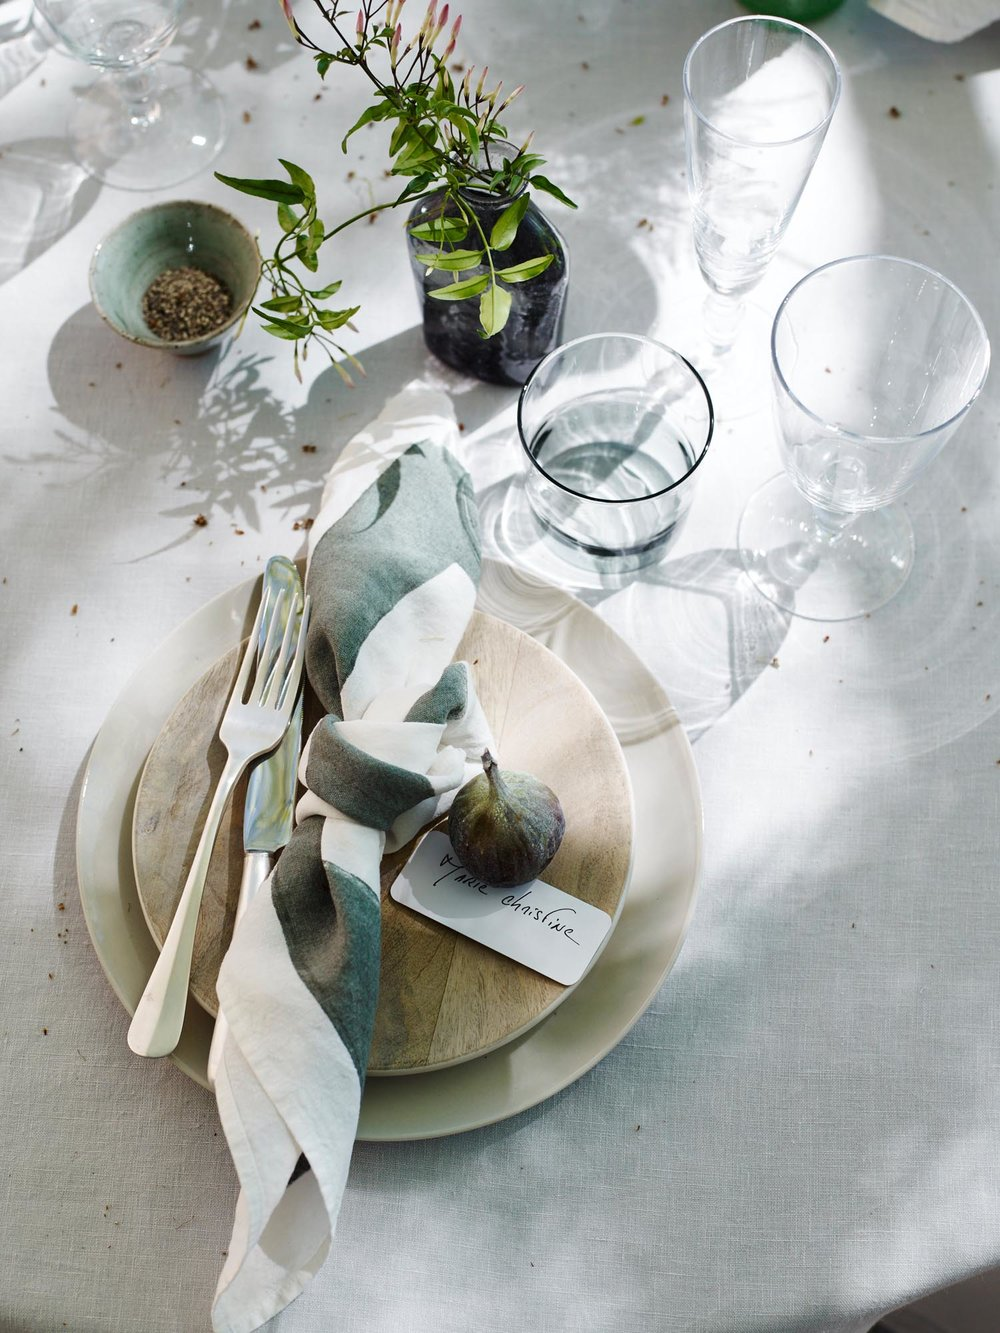 2.HomesAndGardensAug16EmmaLeeAliceHartAliBrownProvenceOutdoorDiningPlaceSetting.jpg